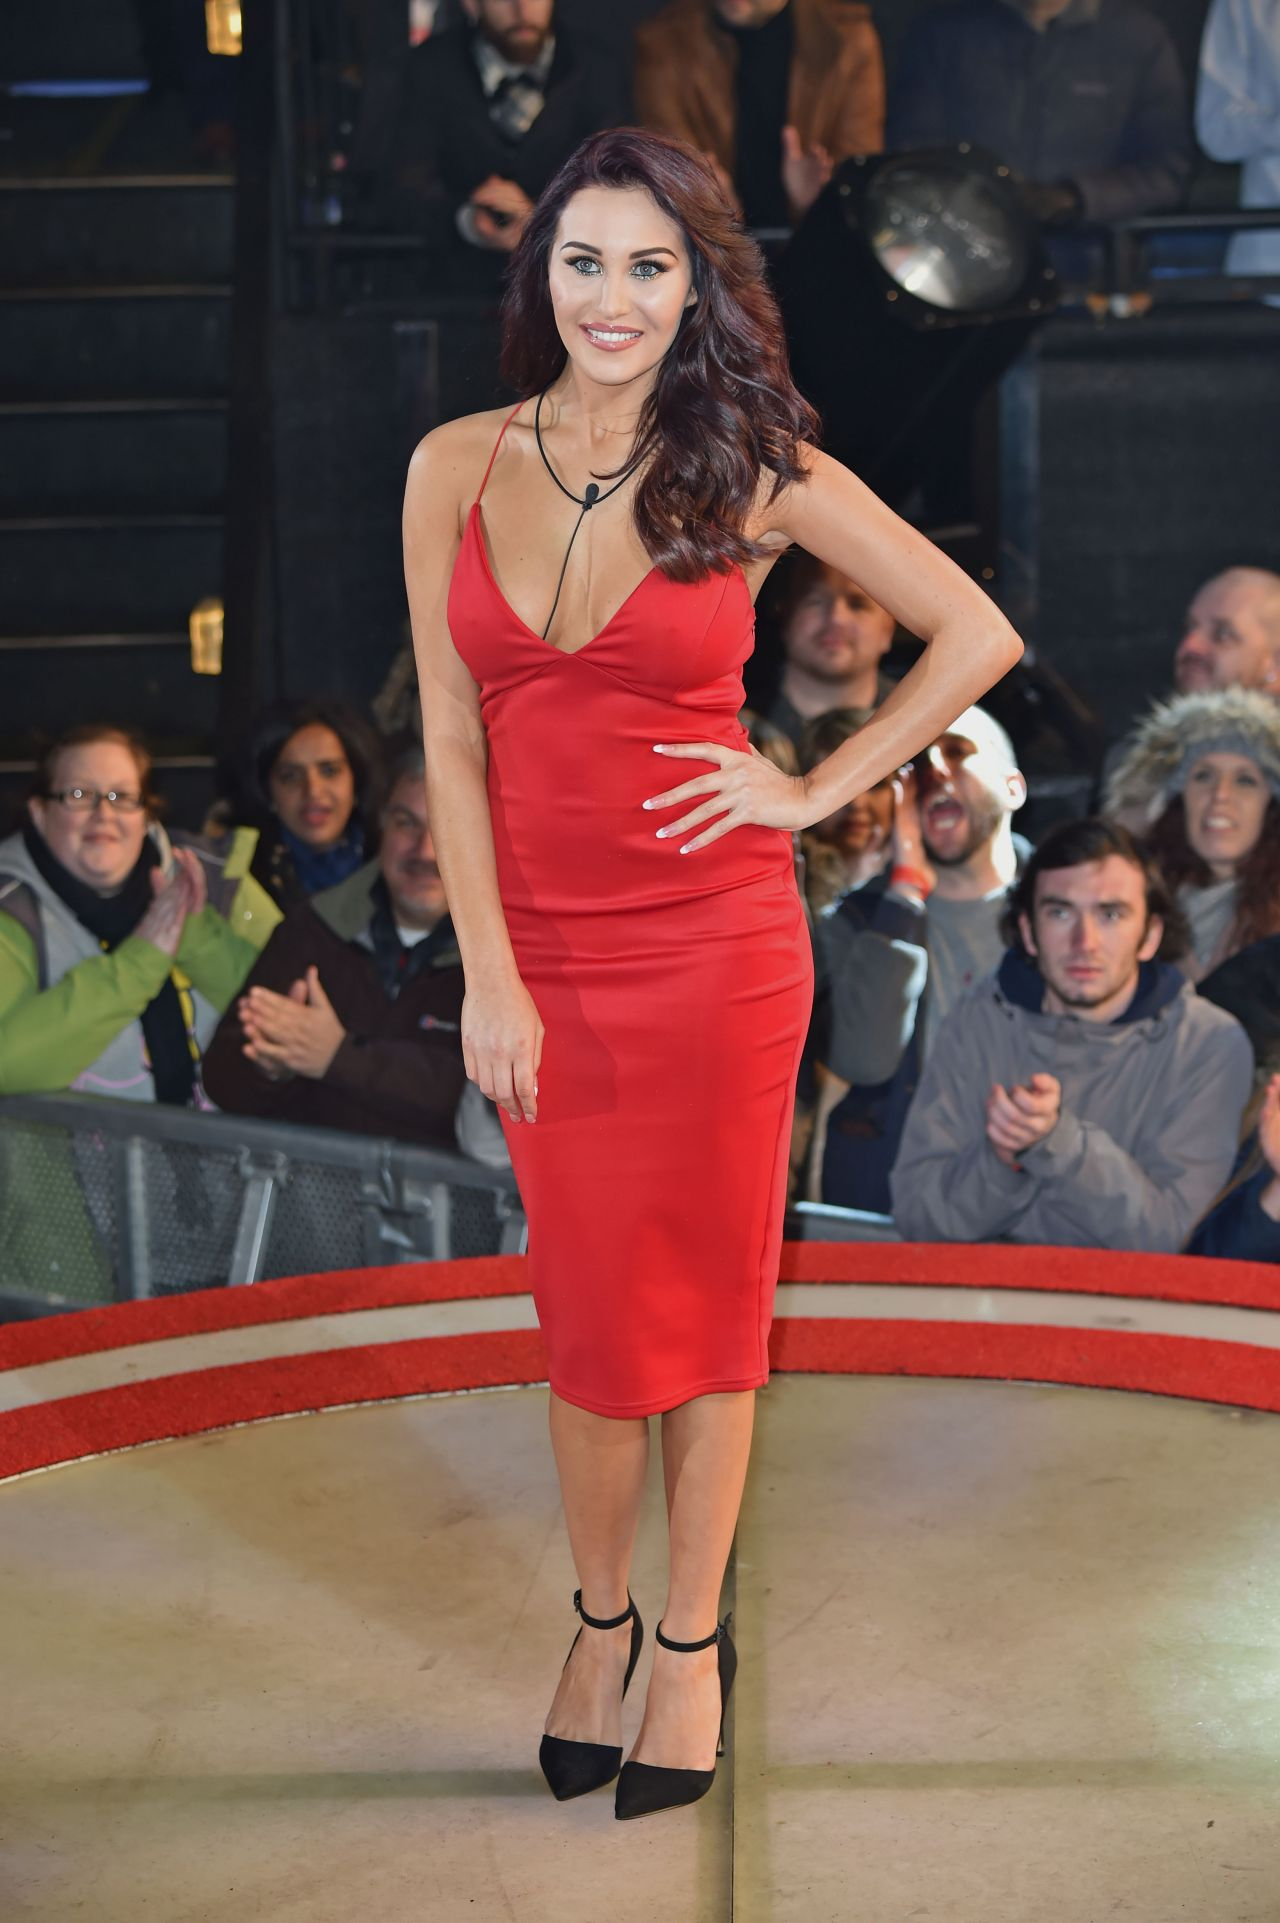 British celebrity big brother